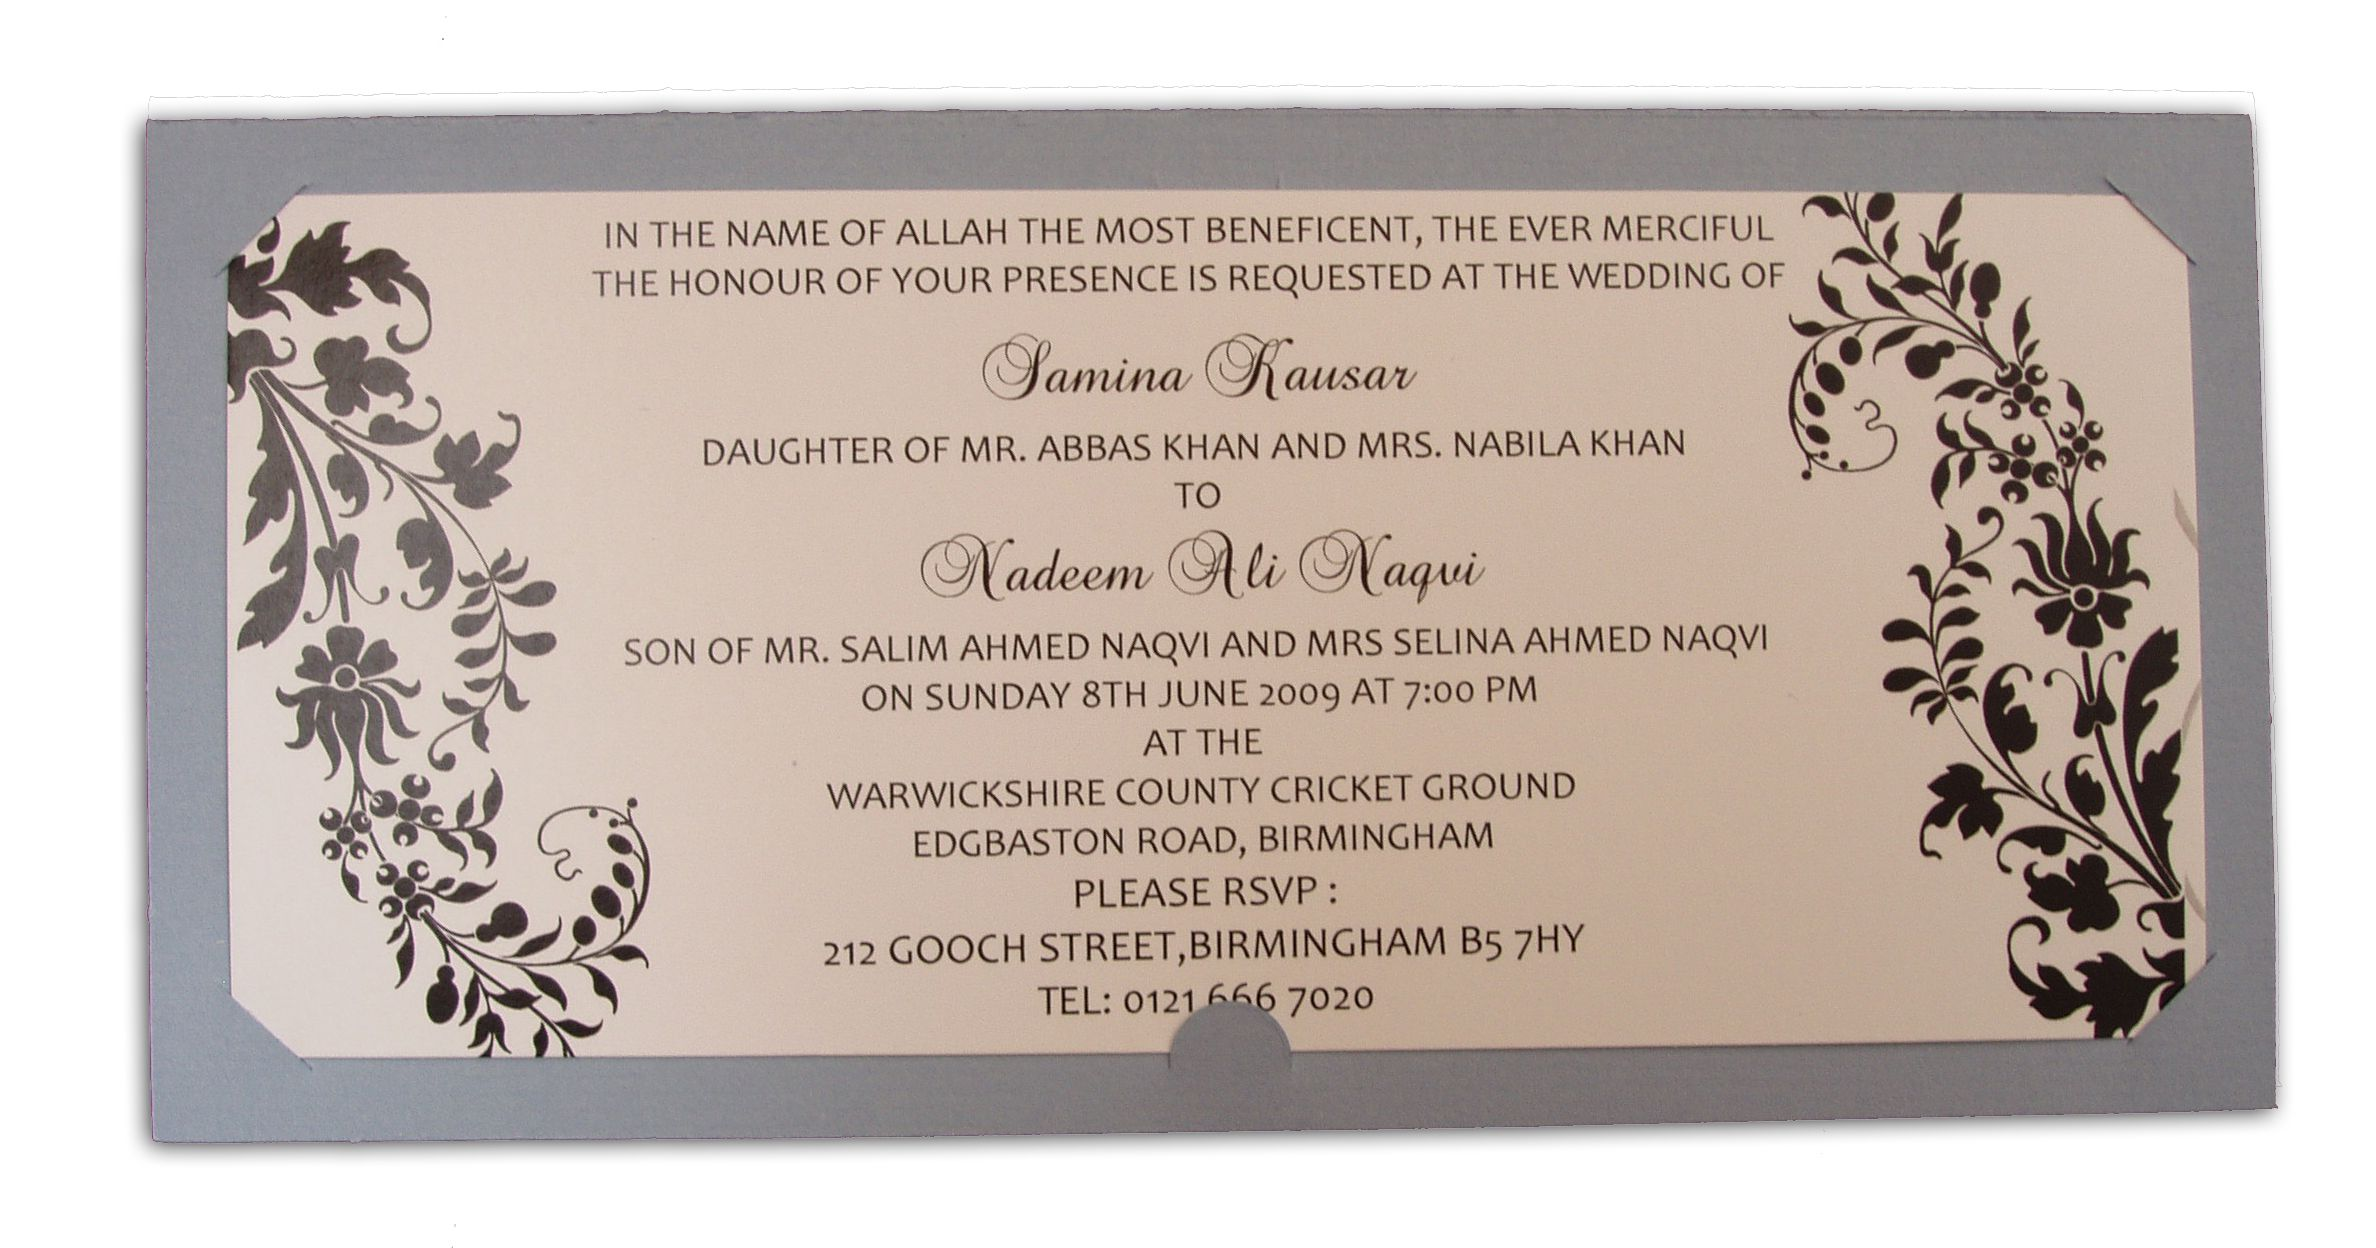 Image Result For Marriage Invitation Cards In Pakistan Pakistani Wedding Cards Pakistani Wedding Invitations Wedding Cards